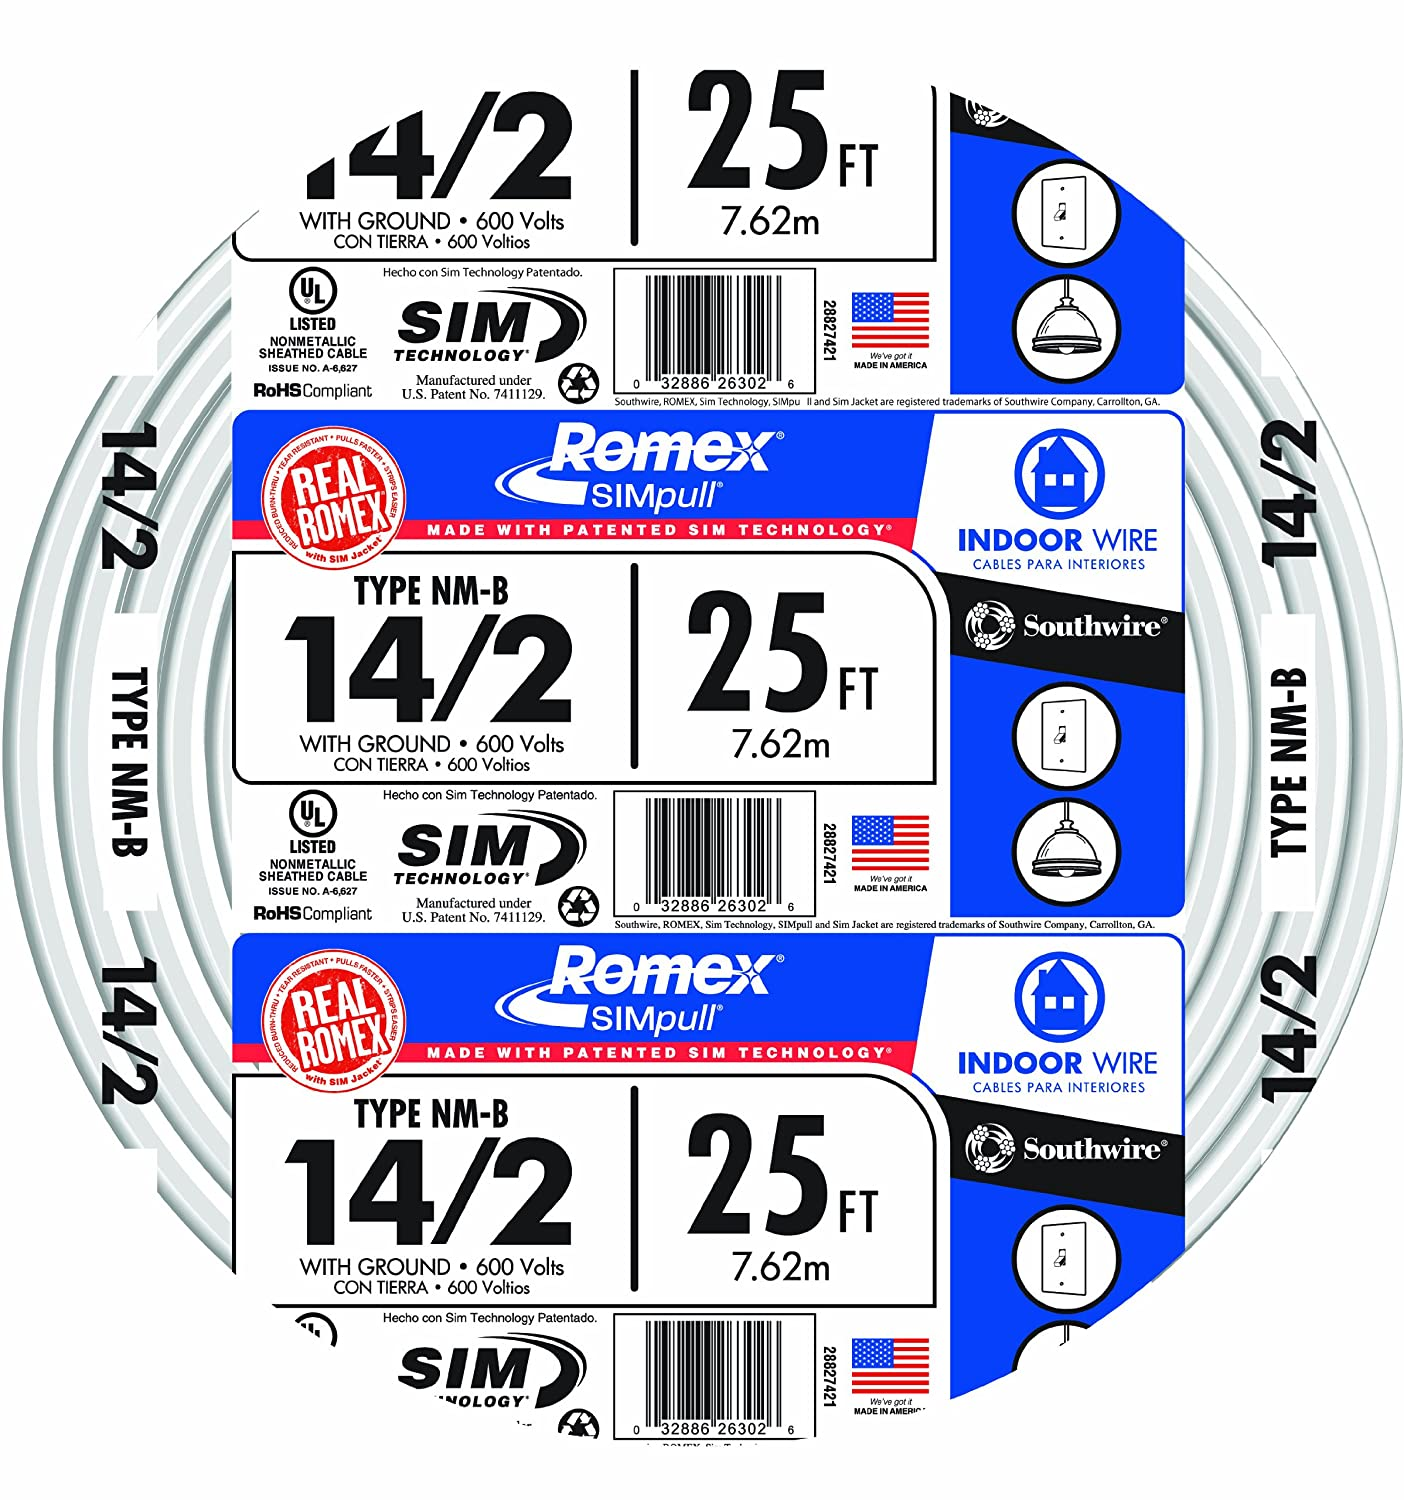 Southwire 28827421 25u0027 14/2 With Ground Romex Brand SIMpull Residential  Indoor Electrical Wire